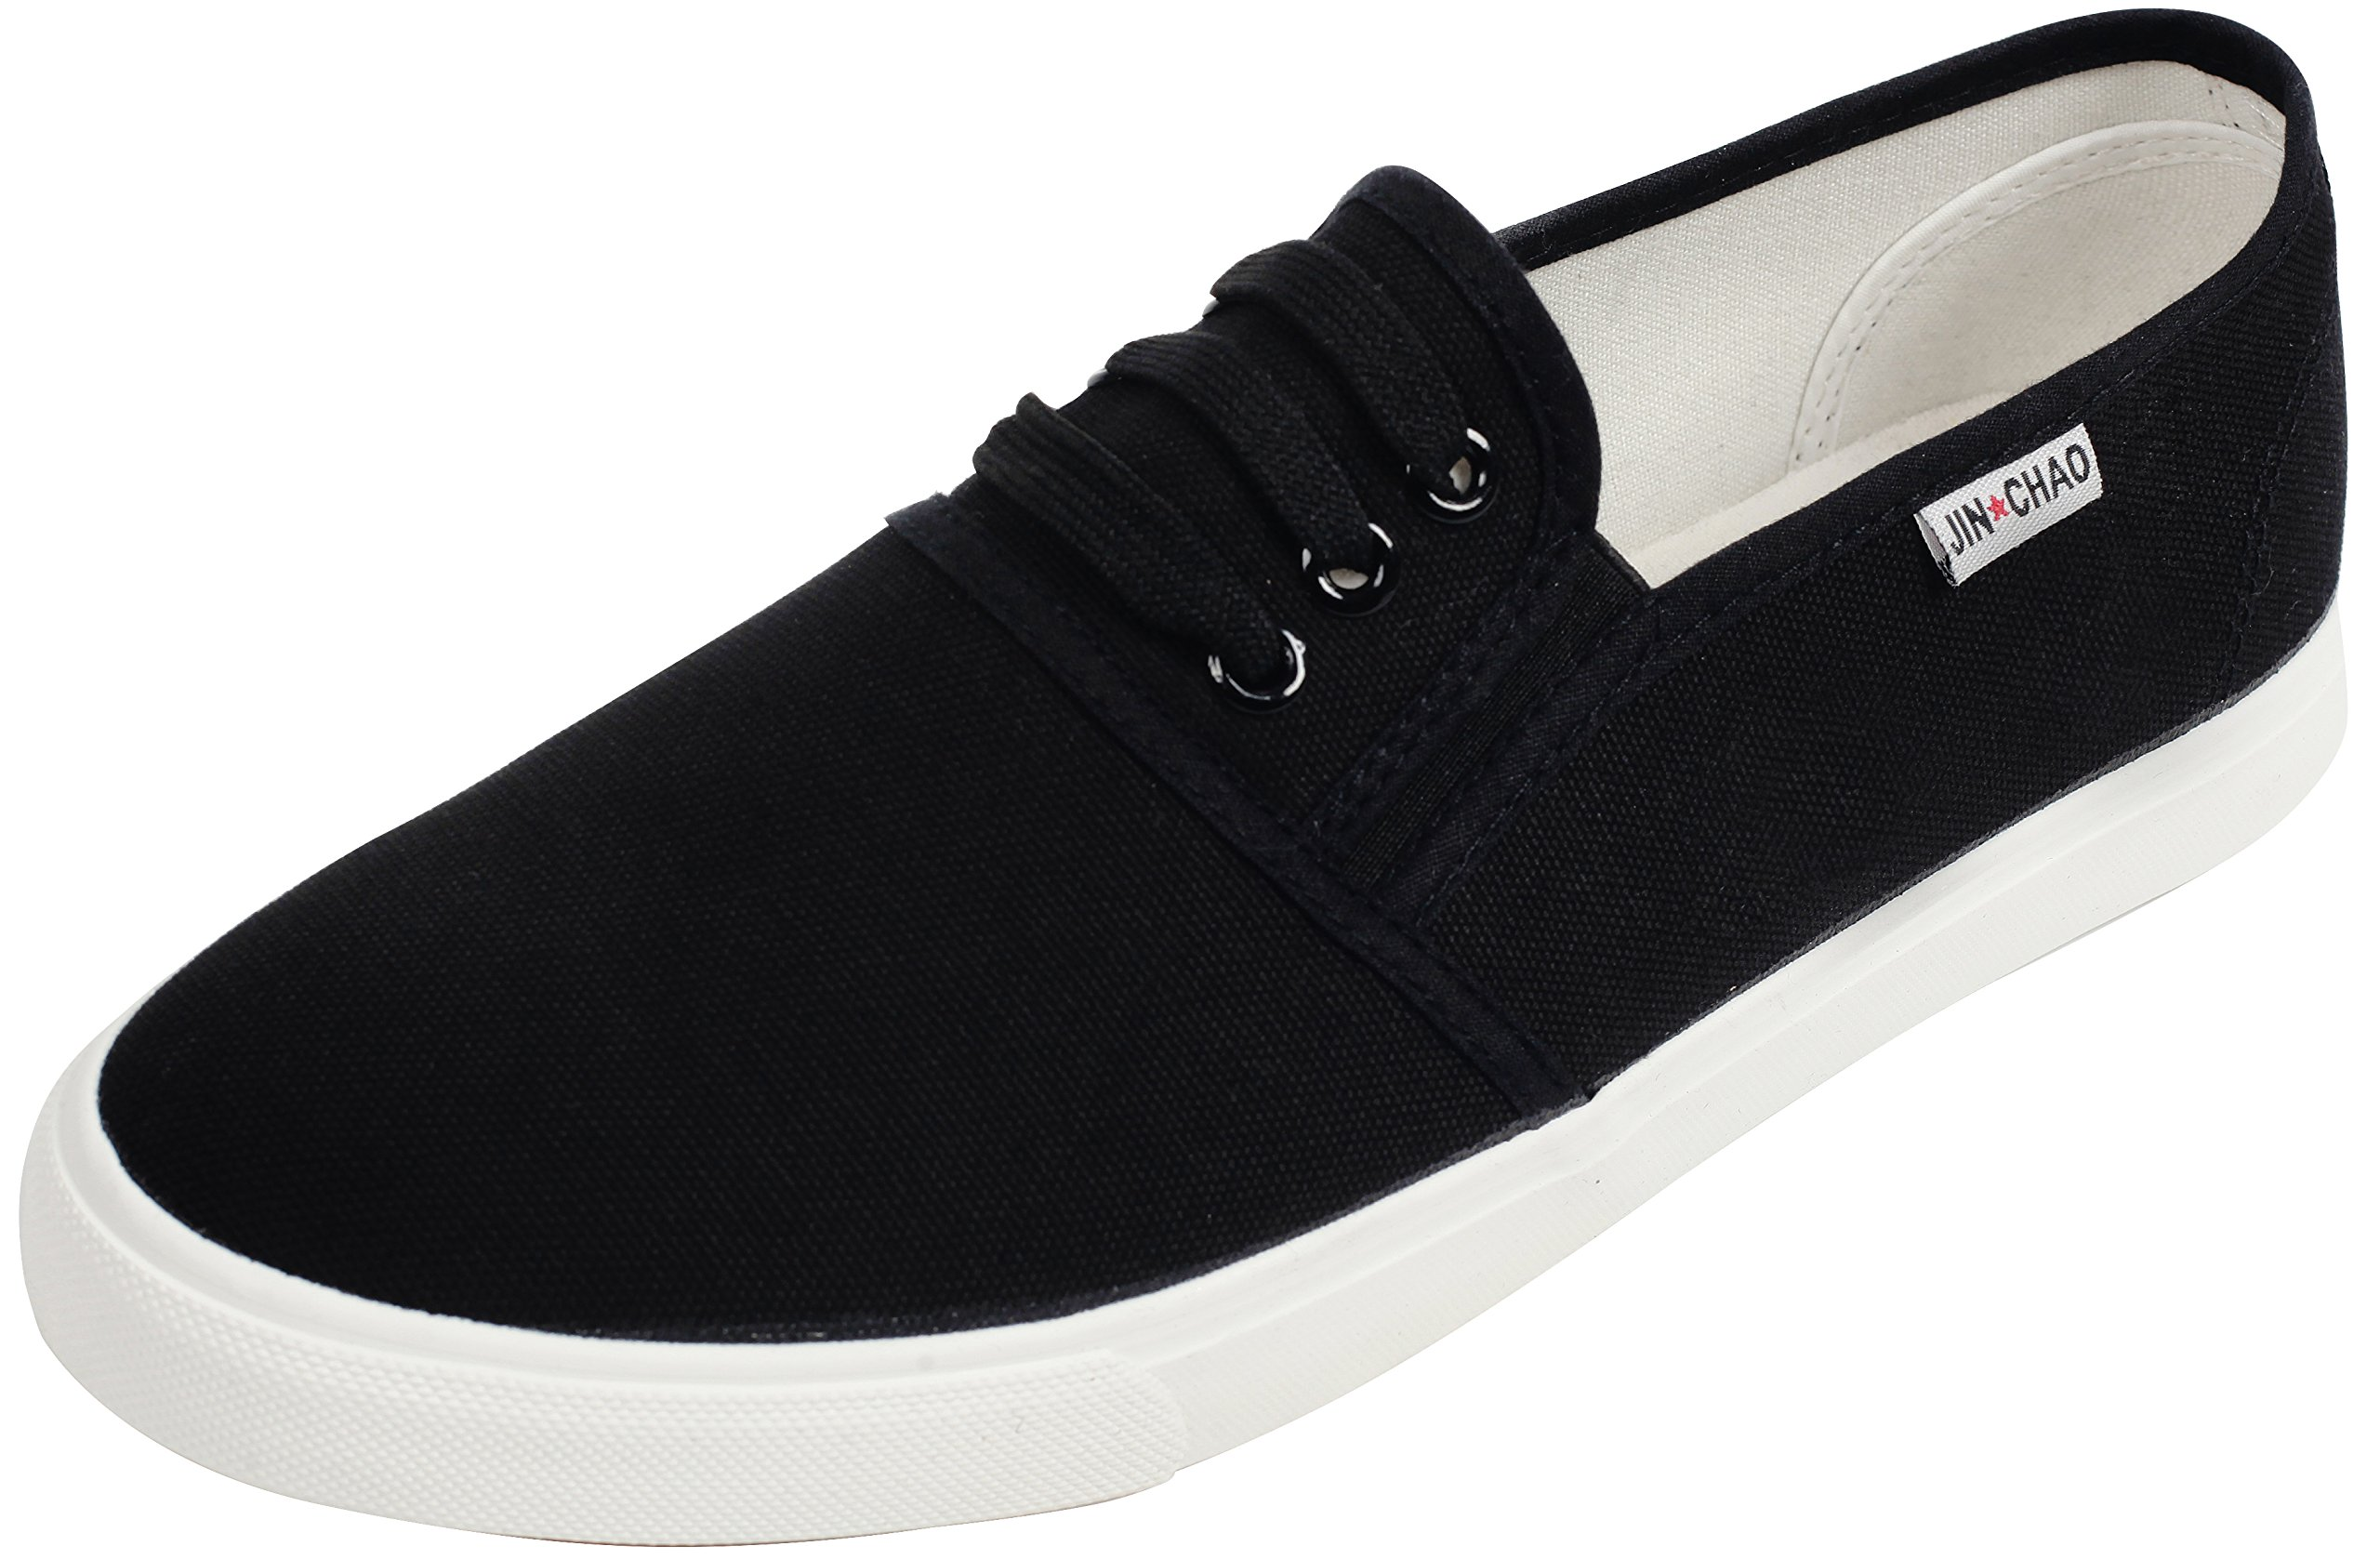 UJoowalk Womens Comfortable Casual Soft Black Canvas Slip On Loafers Fashion Sneakers - Size 9